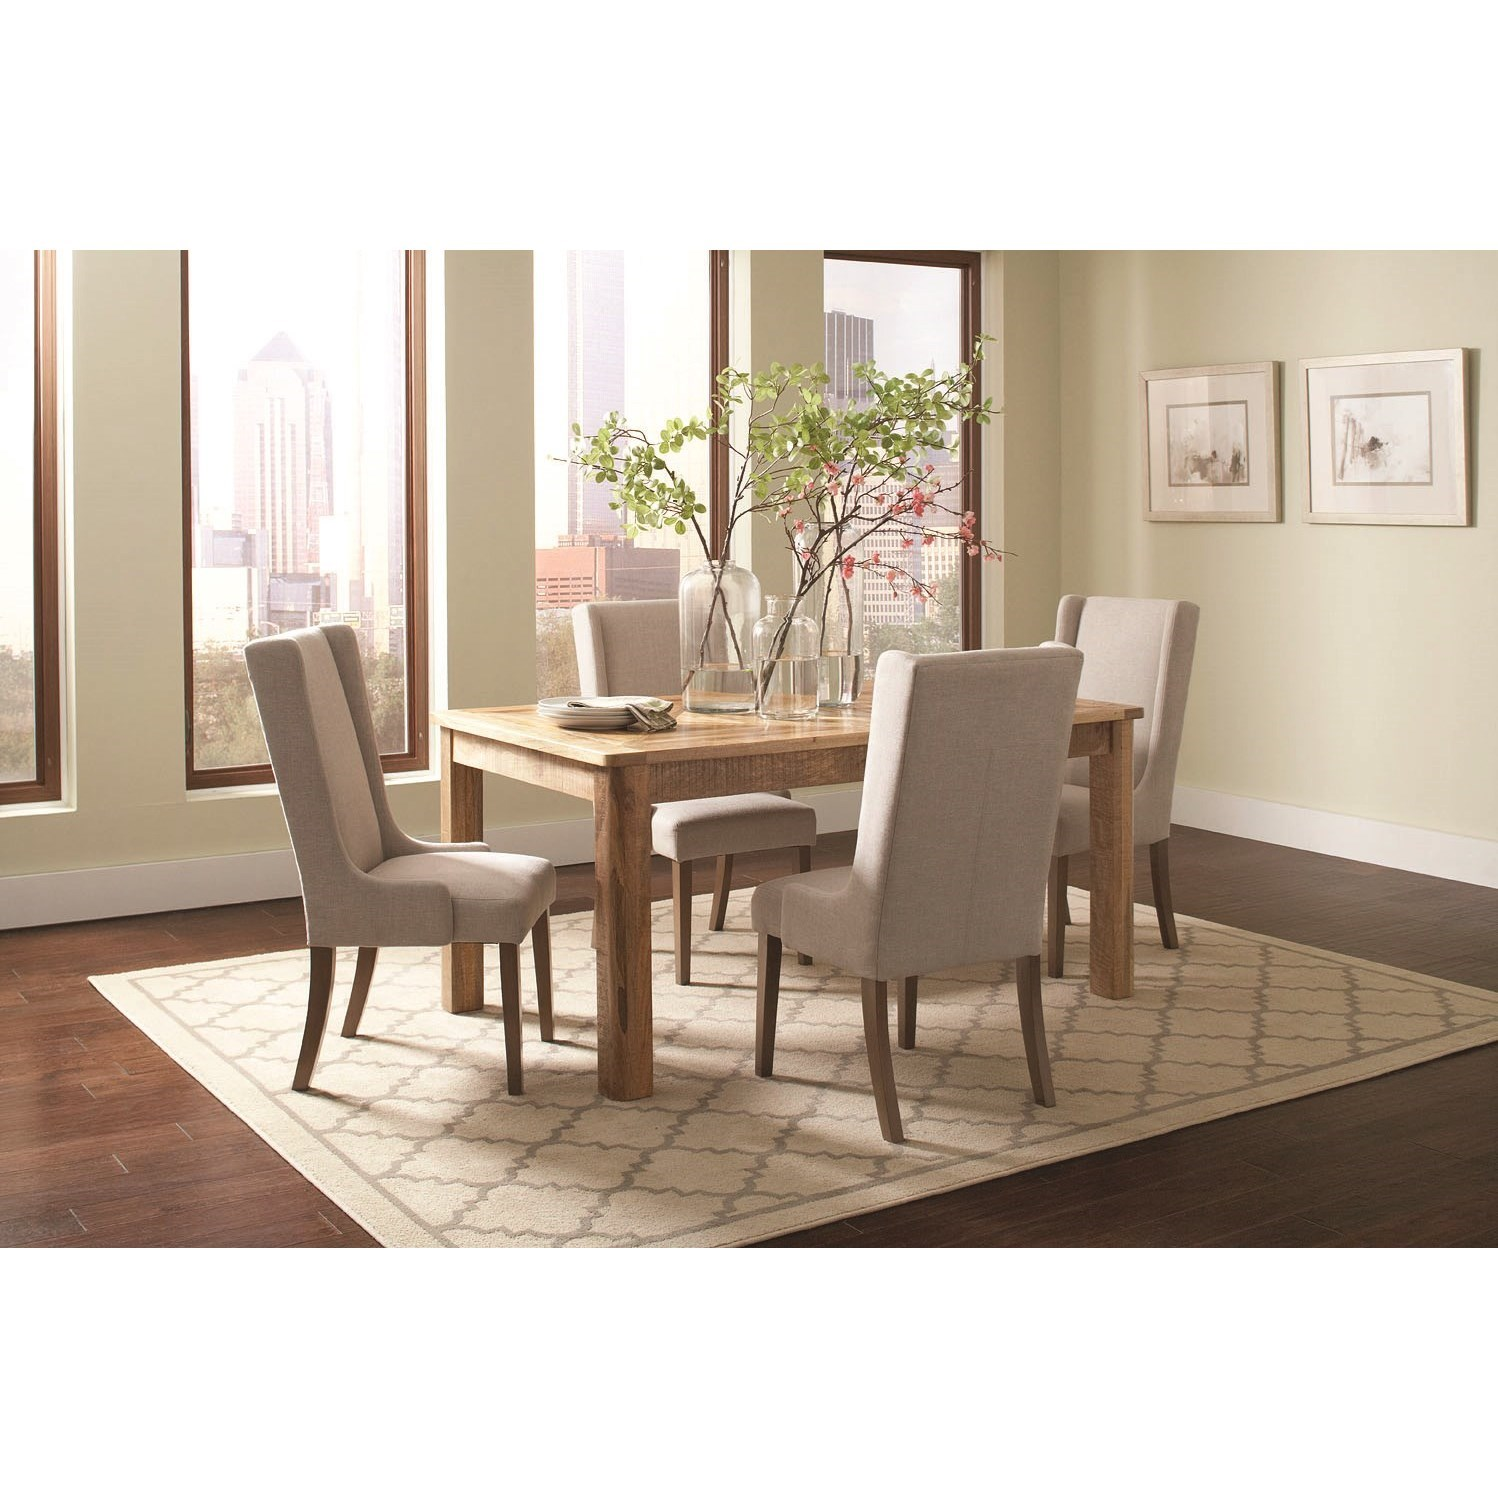 Coaster Solomon Table and Chair Set - Item Number: 106691+4x100353